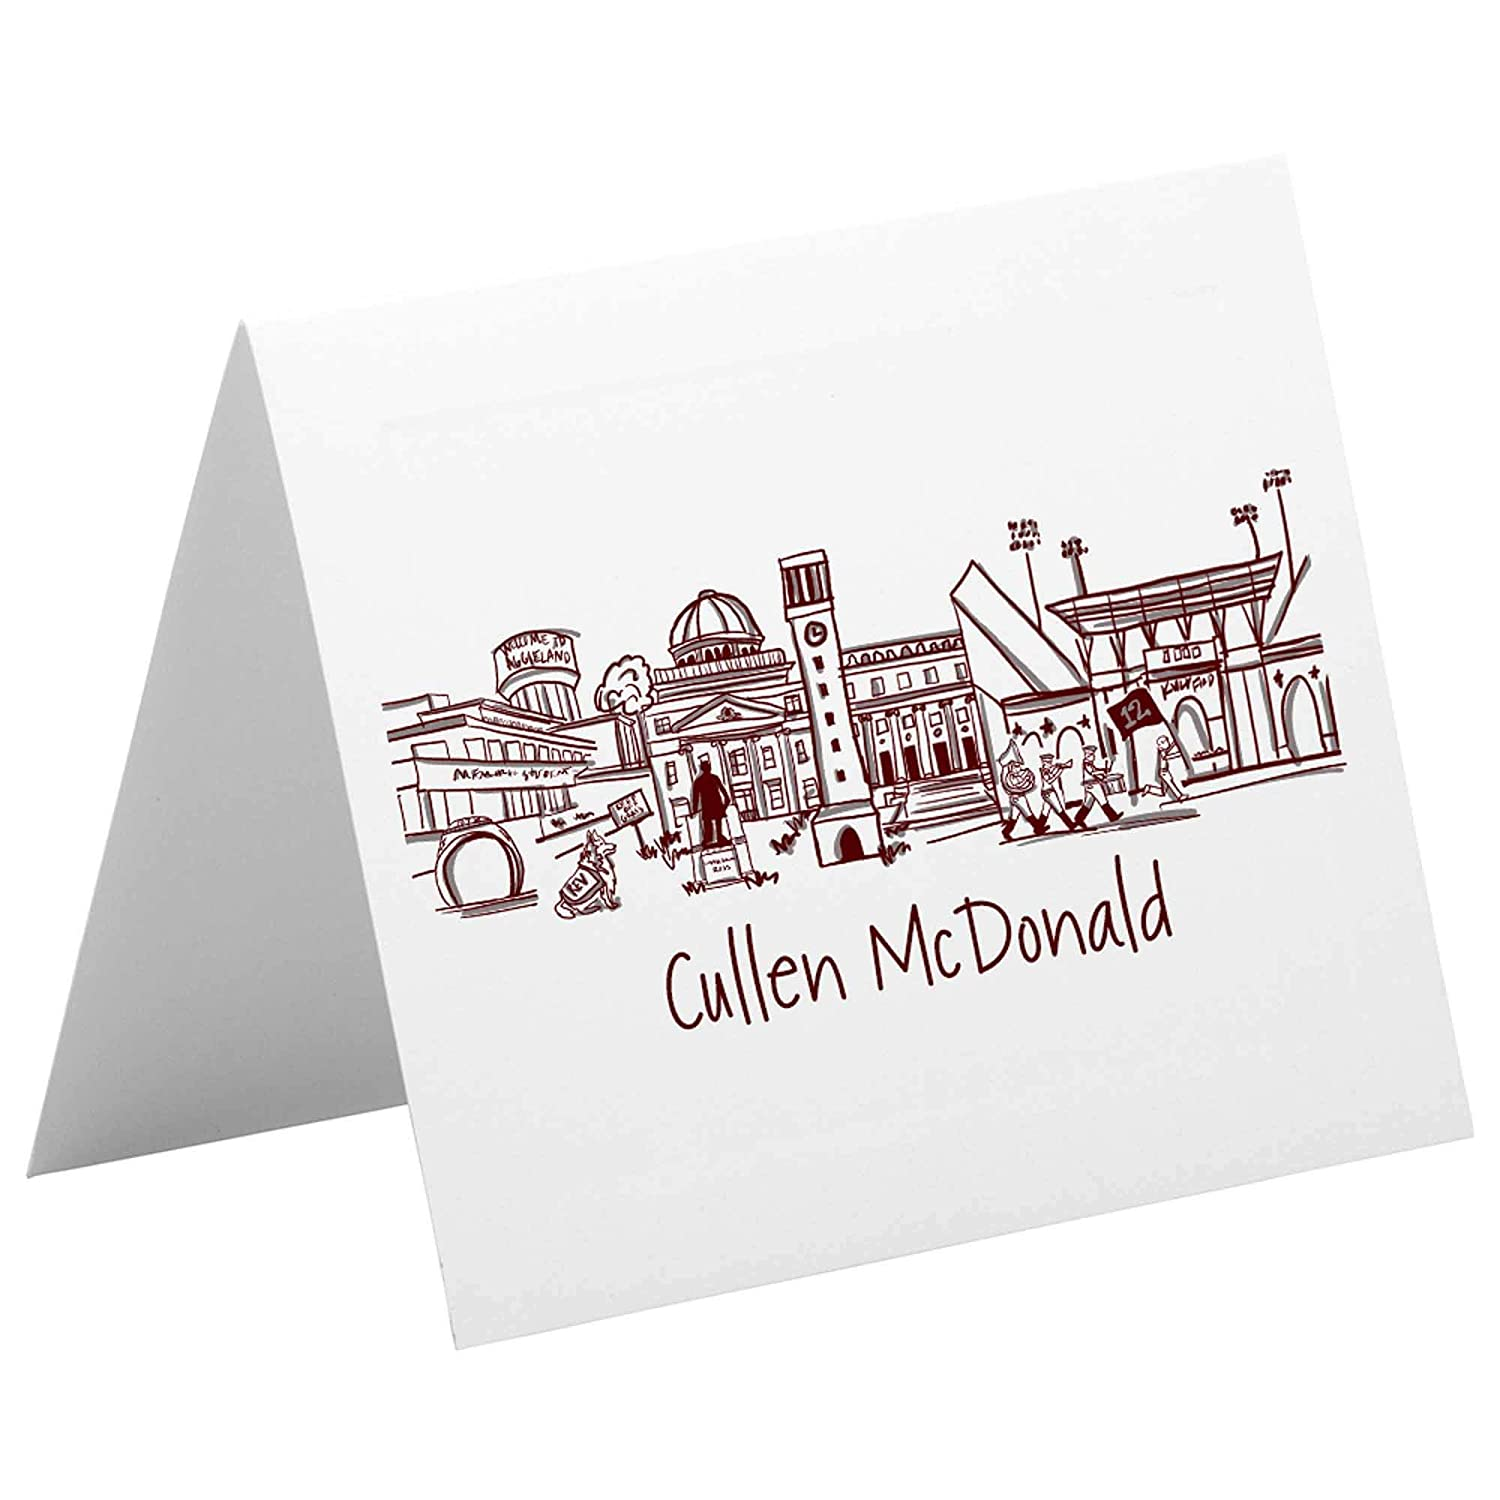 Personalized Notecard Challenge the lowest price Stationery Set {Texas AM Manufacturer direct delivery Campu University